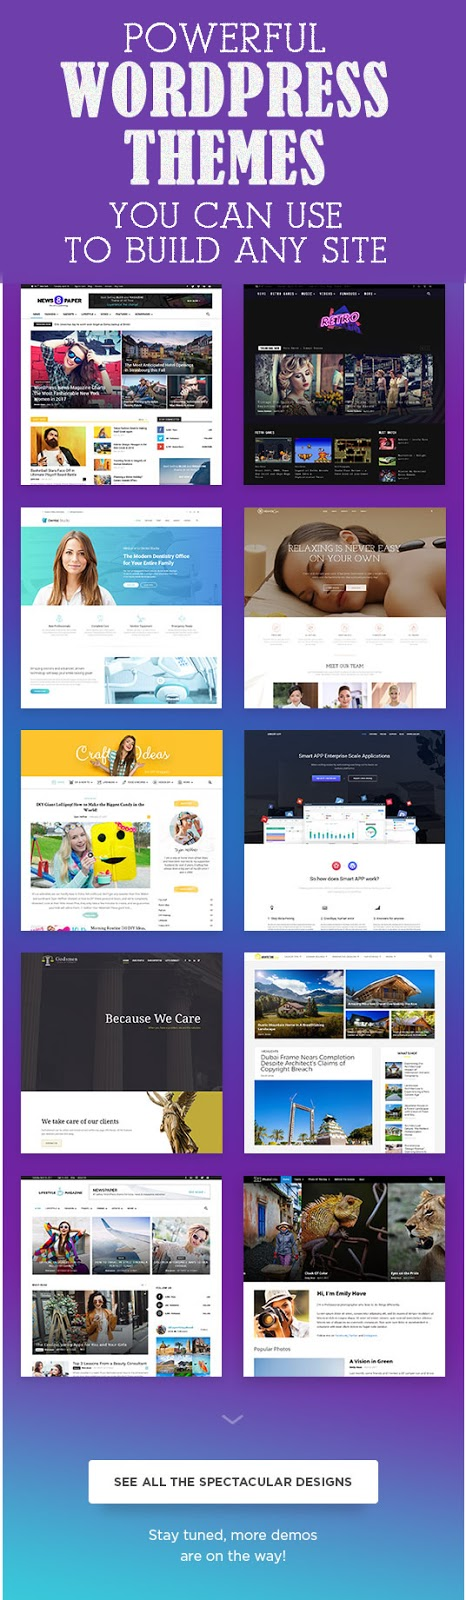 Powerful Multi-Purpose WordPress Themes You Can Use To Build Any Website